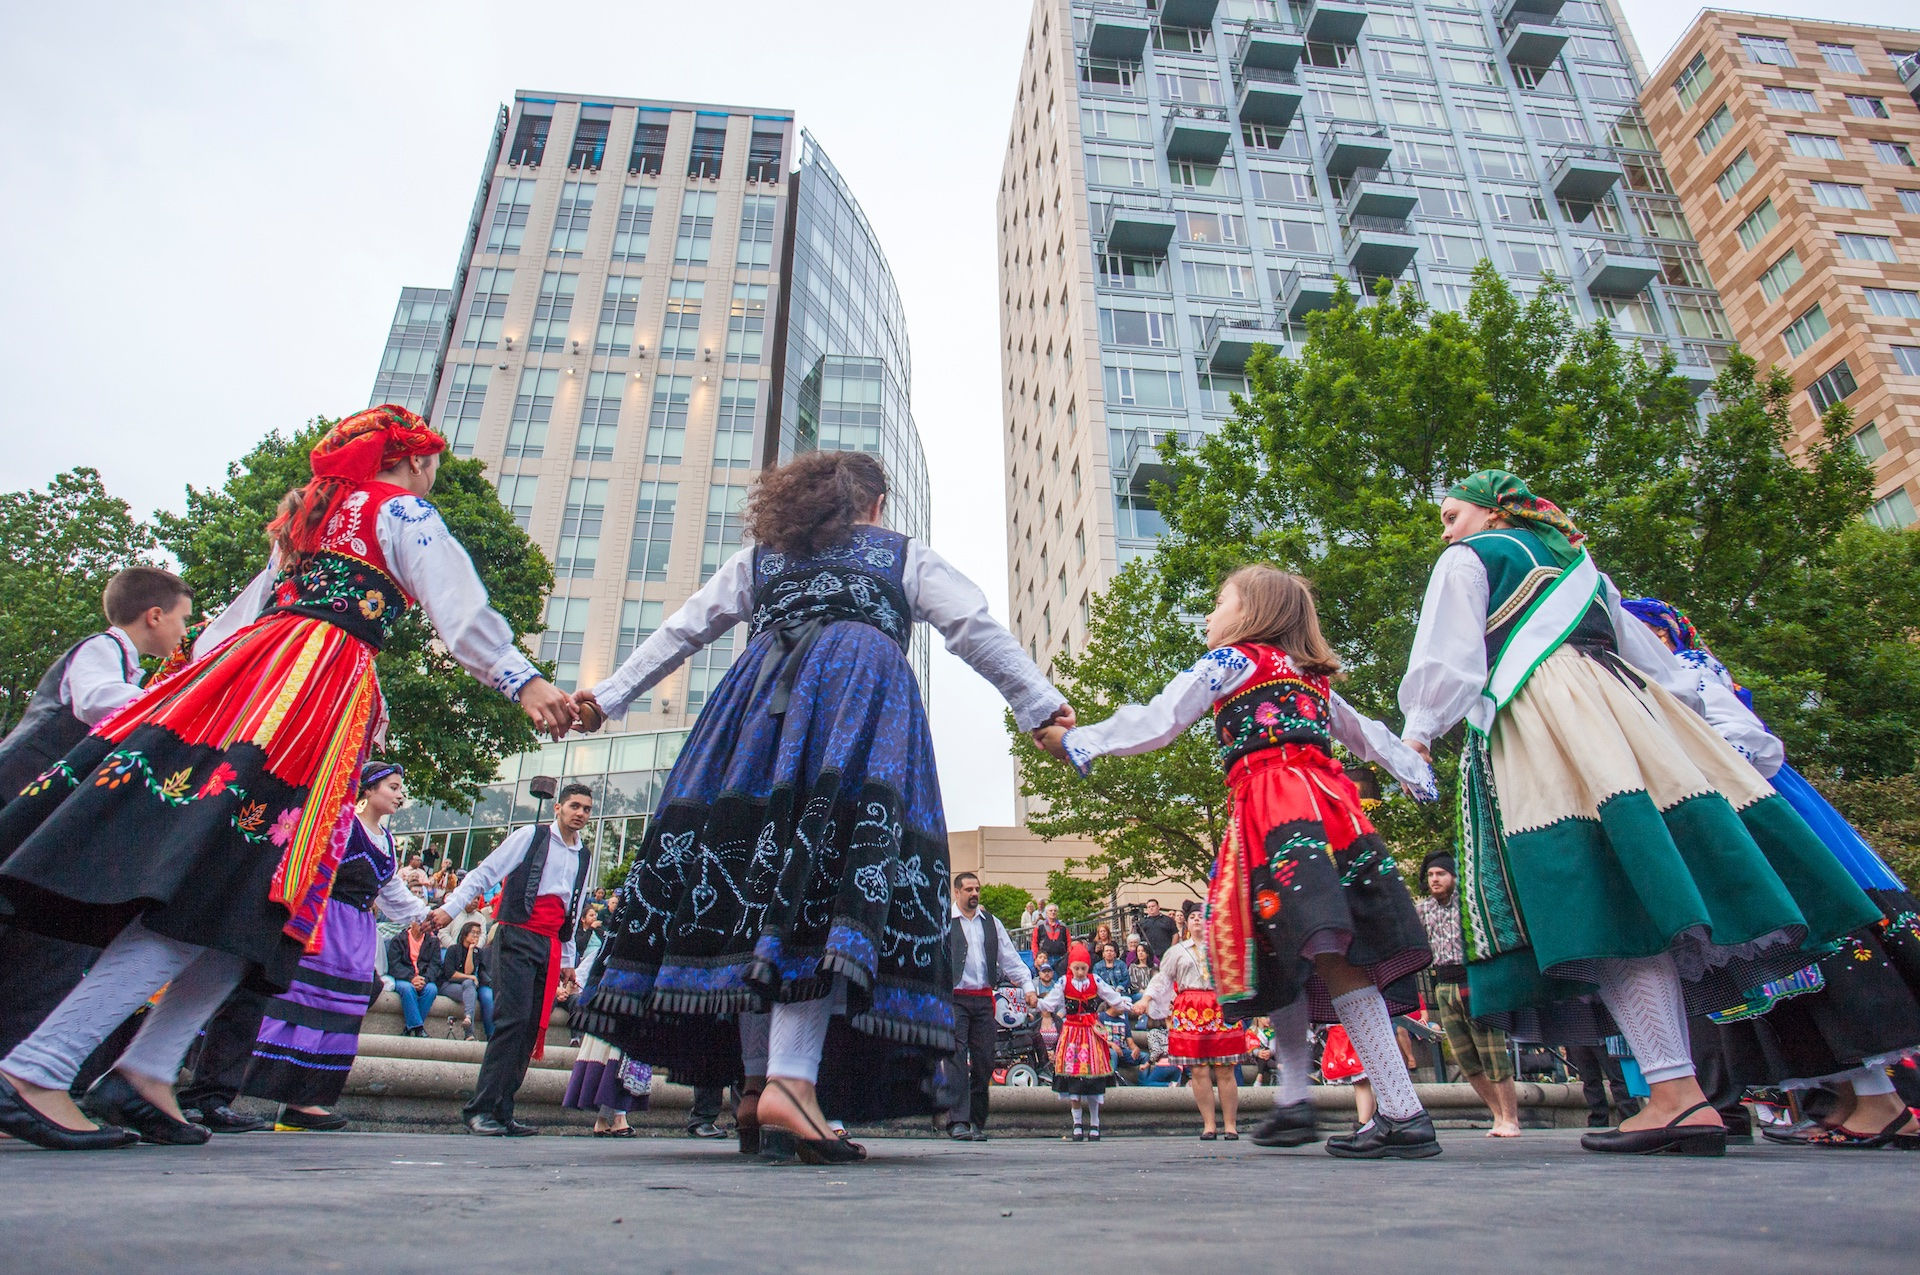 folkloric-dance-performance-on-waterplace-park-basin-stage_27925820647_o